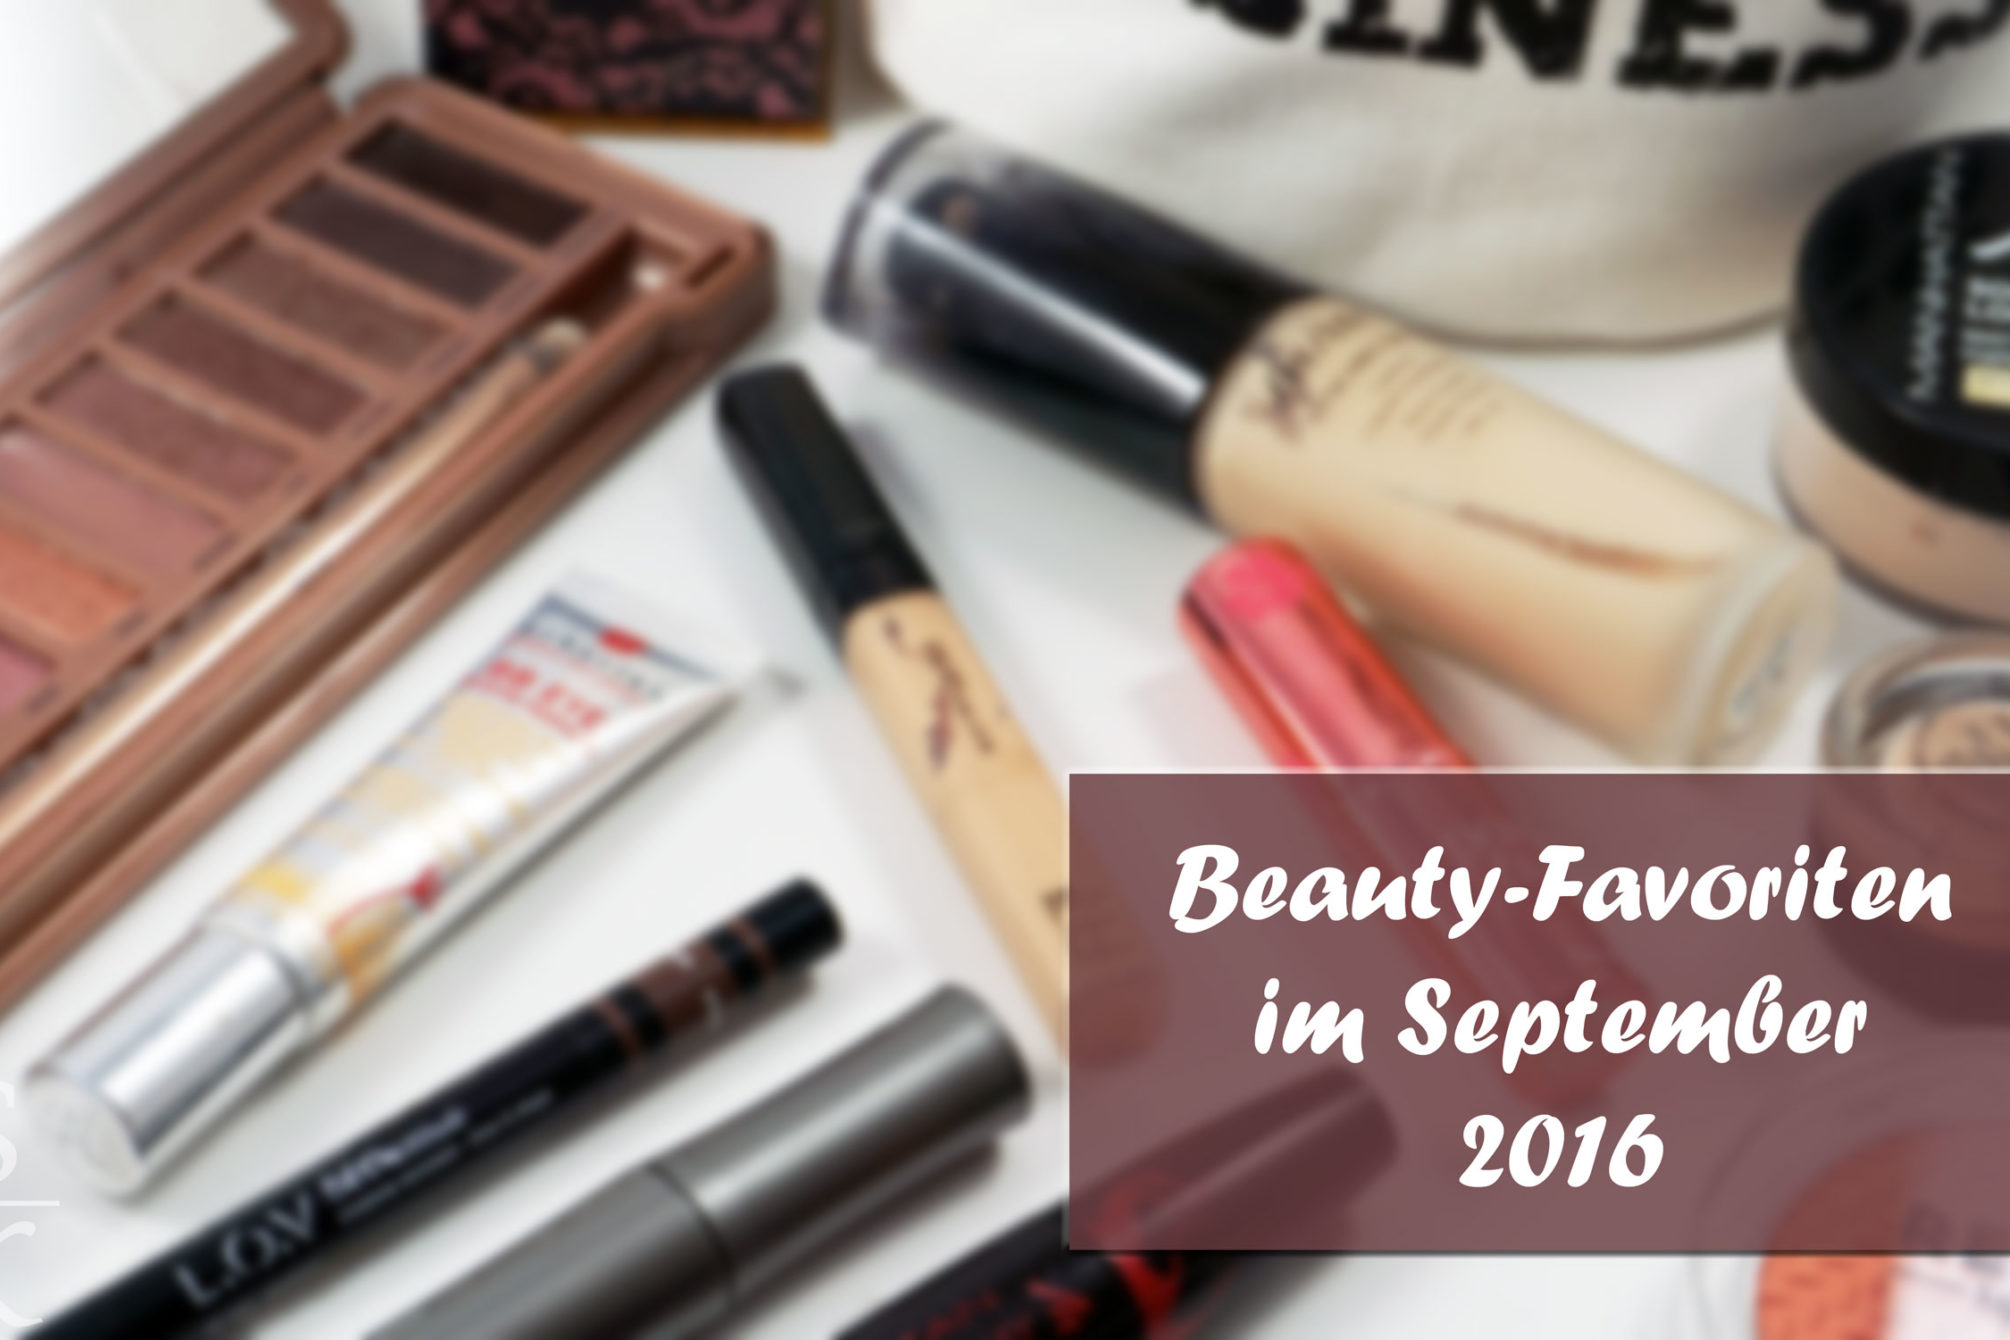 Beauty-Favoriten September 2016